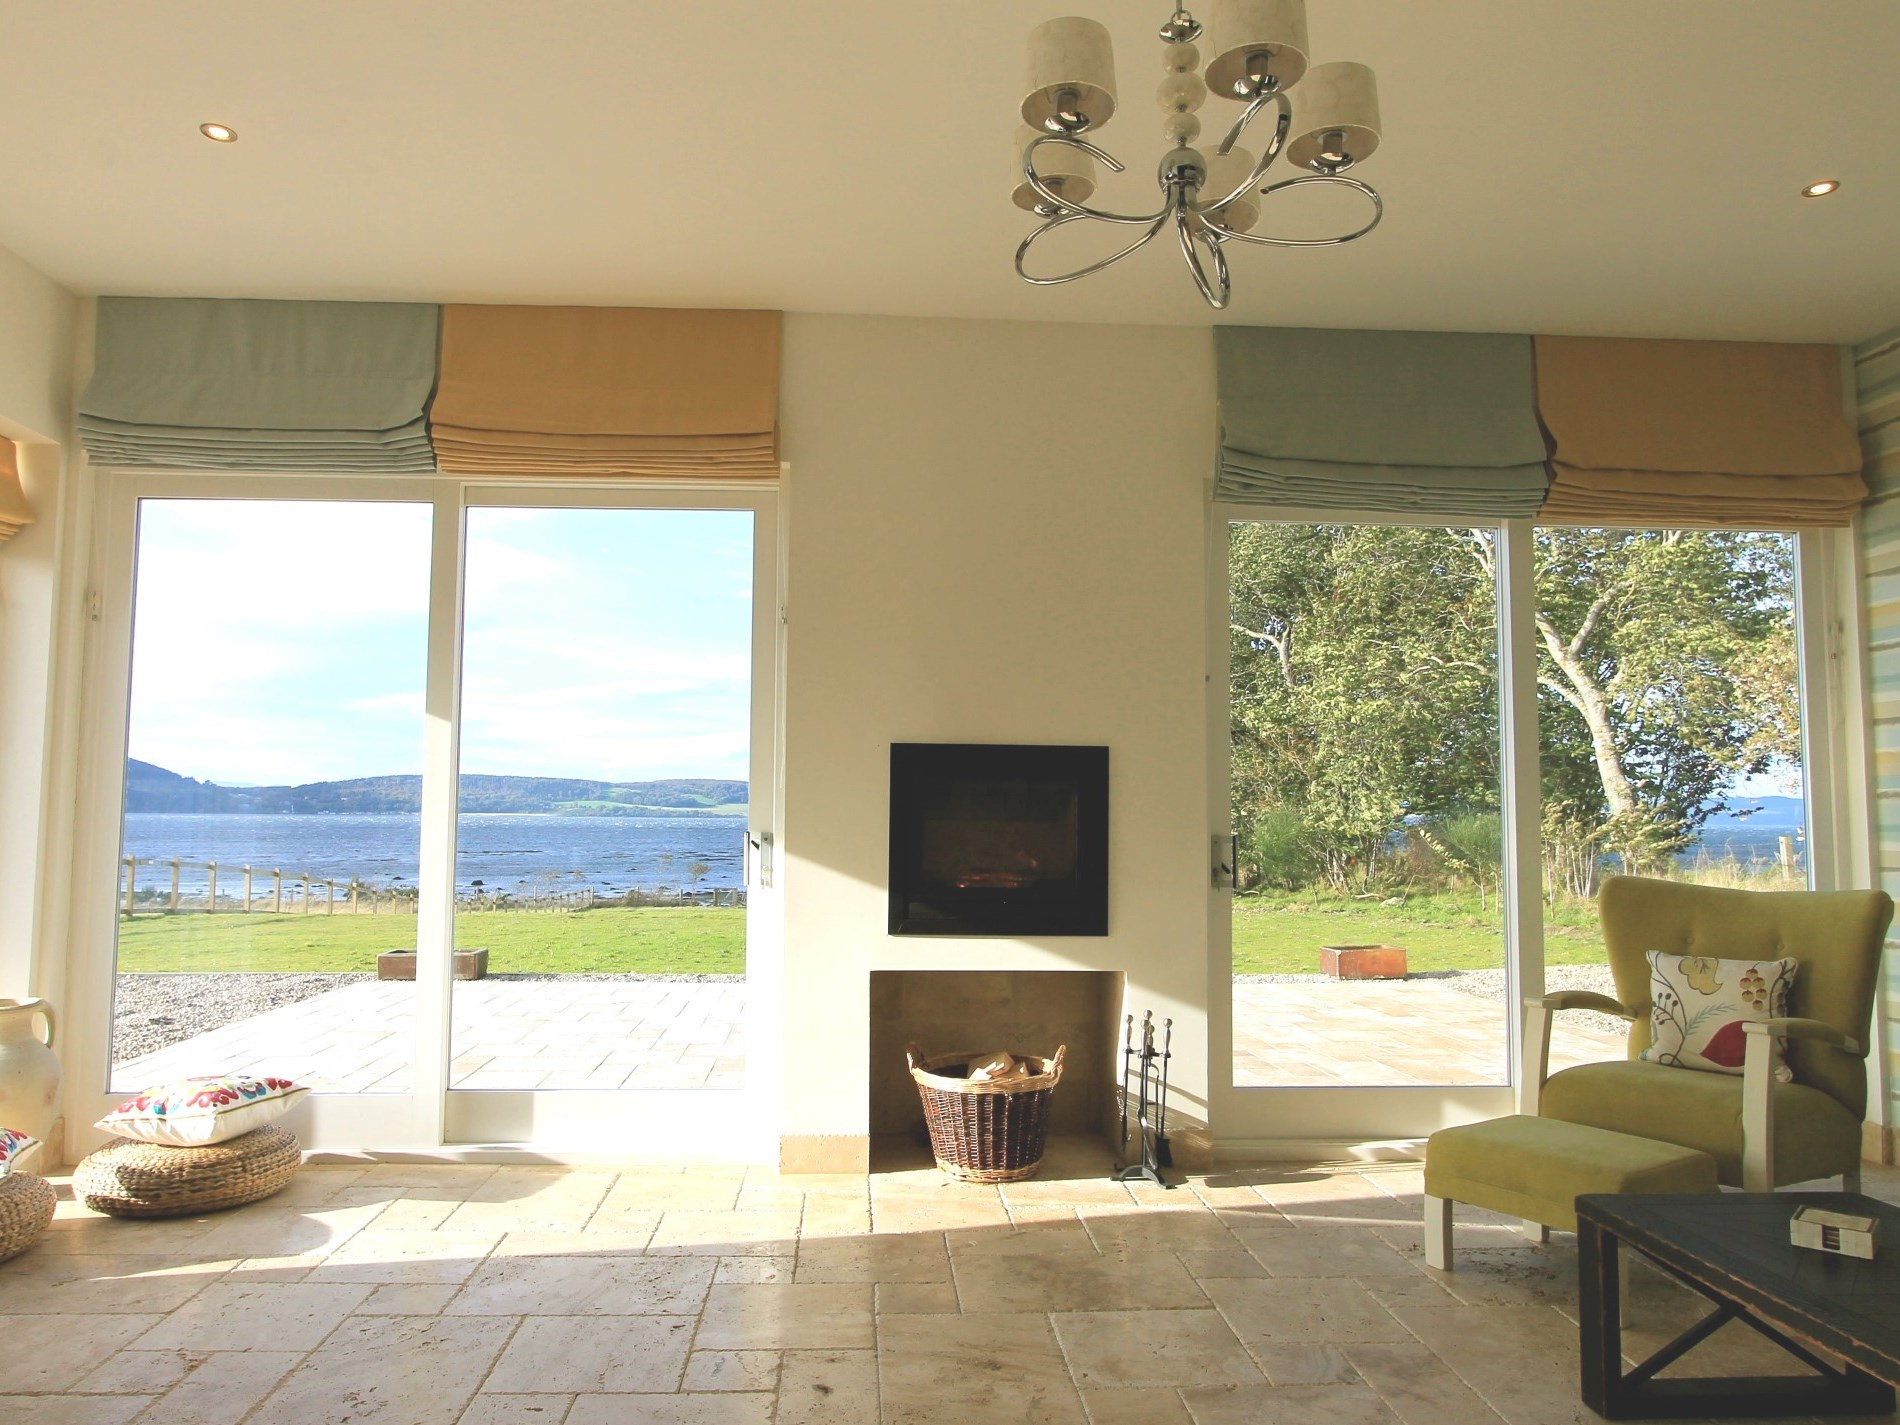 4 Bedroom Cottage in Inverness, Inverness, Loch Ness & Nairn, Highlands